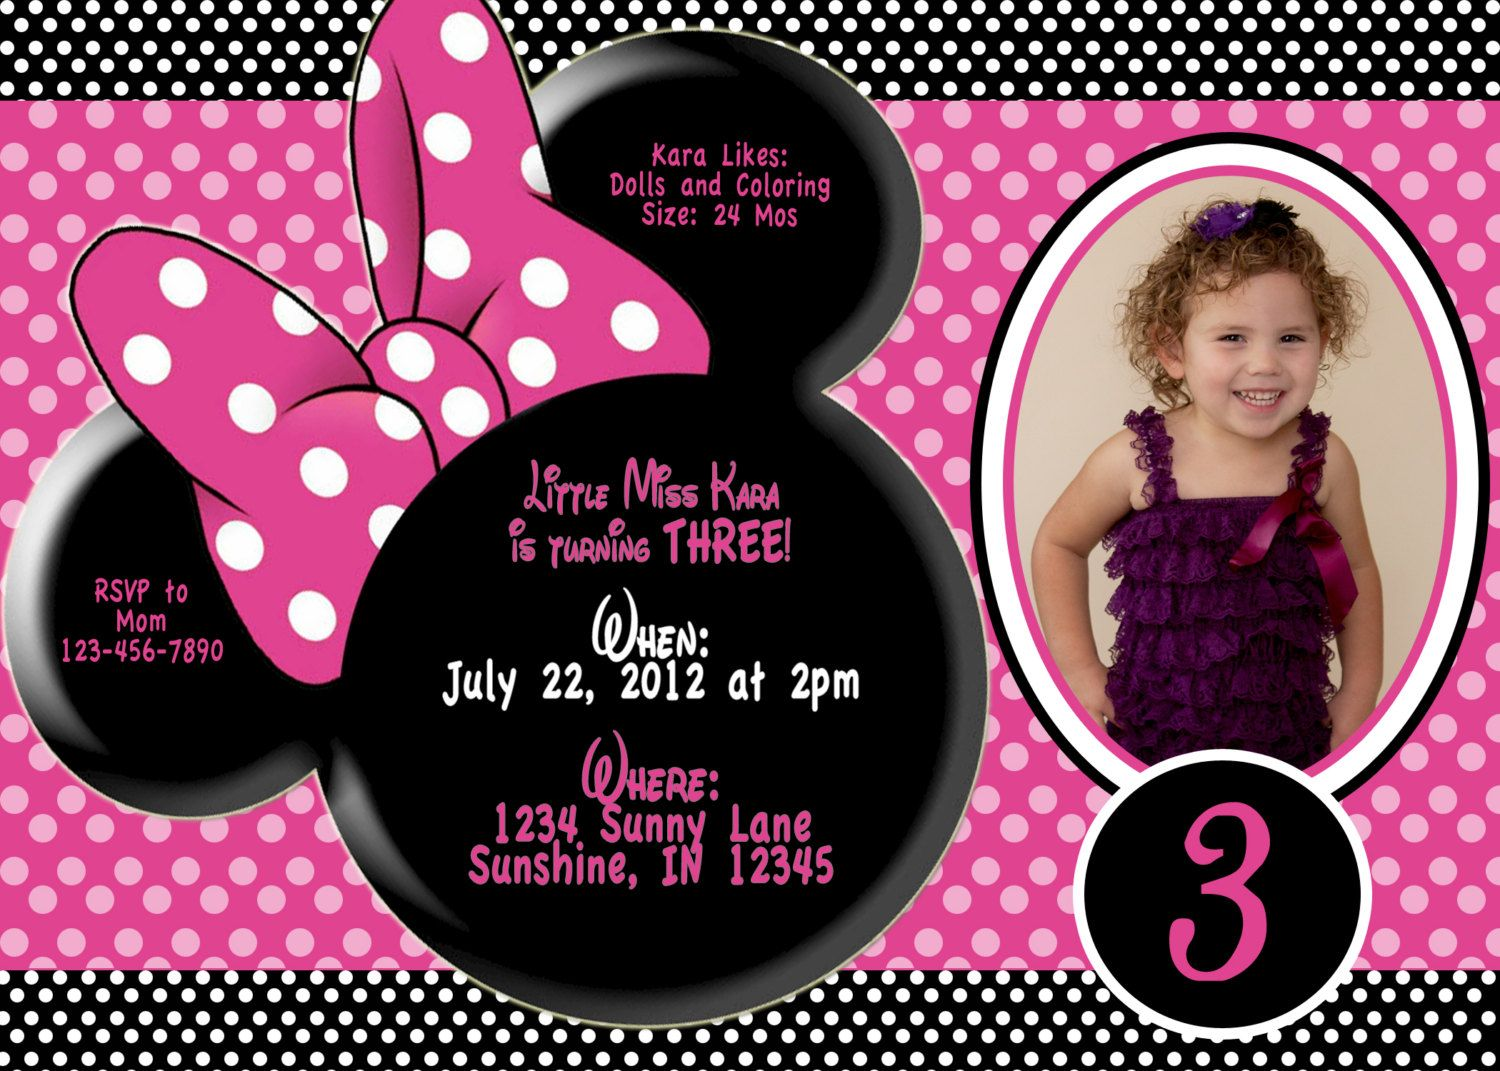 katey lee is turning pic with  at bottom  katey party, invitation samples